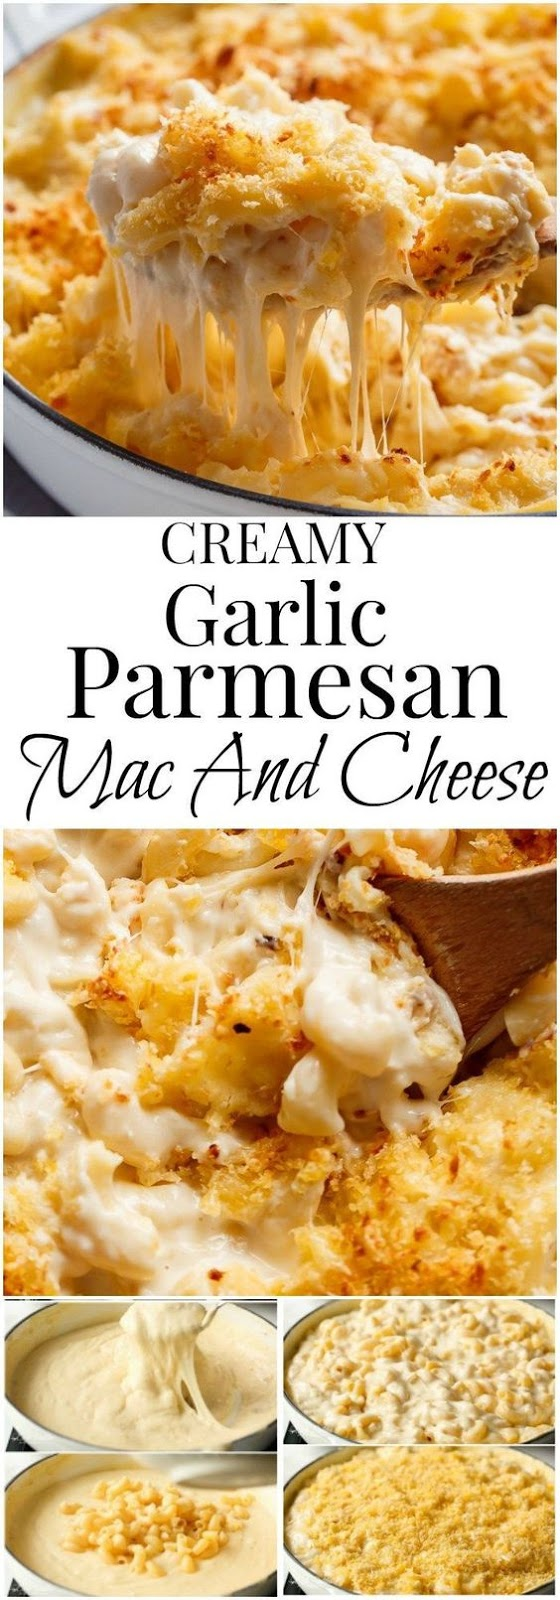 ★★★★☆ 7561 ratings | creamy garlic parmesan mac and cheese #HEALTHYFOOD #EASYRECIPES #DINNER #LAUCH #DELICIOUS #EASY #HOLIDAYS #RECIPE #creamy #garlic #parmesan #mac #cheese